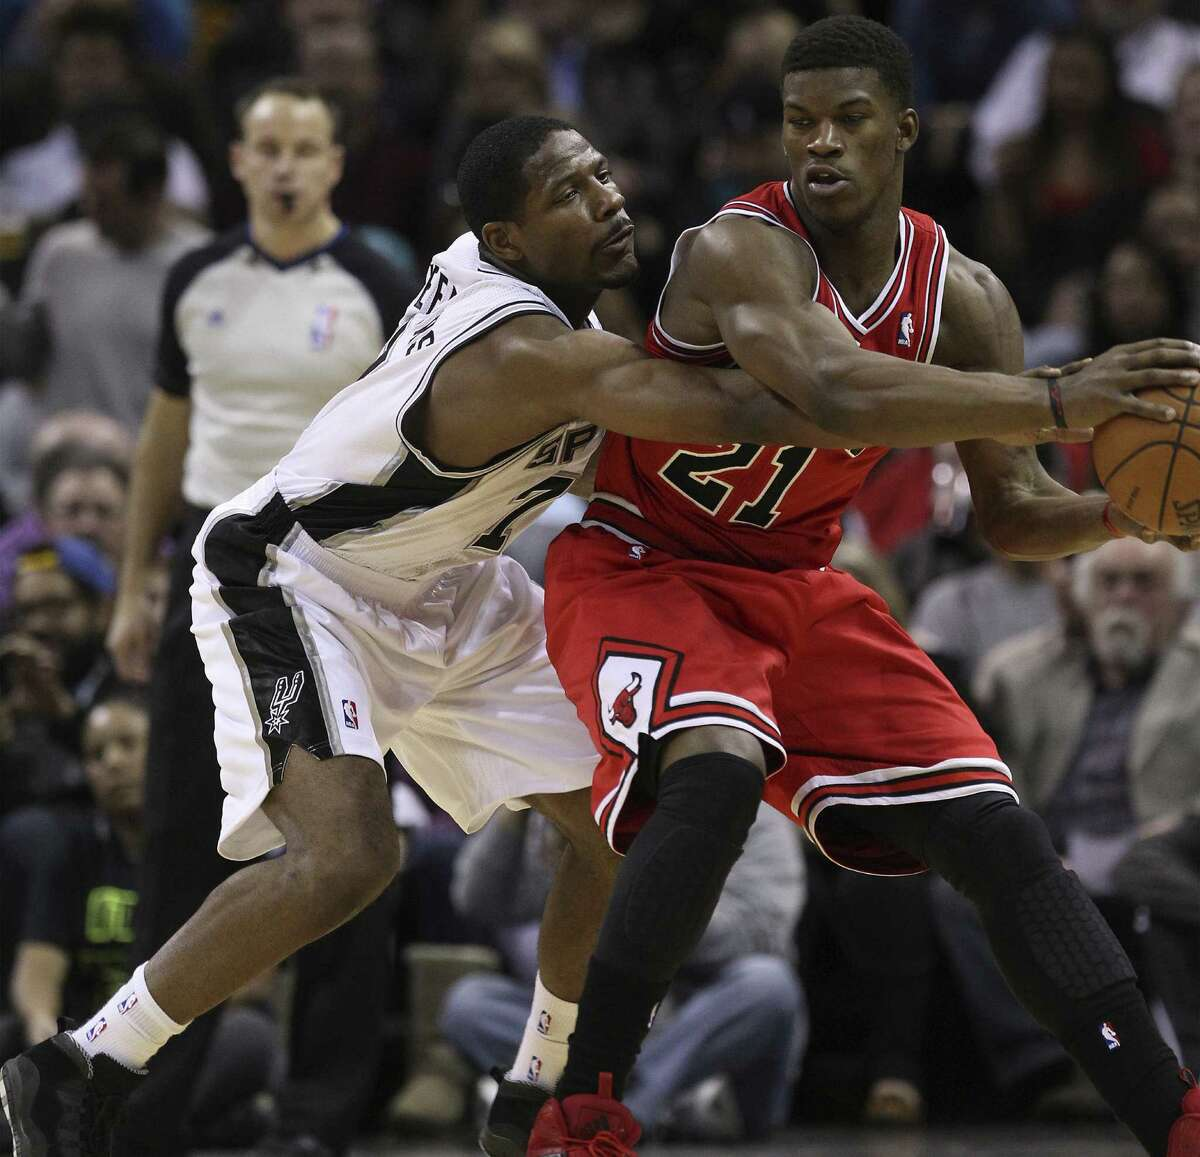 Spurs swingman Othyus Jeffers, who received his second NBA start on Wednesday, defends the Bulls' Jimmy Butler.